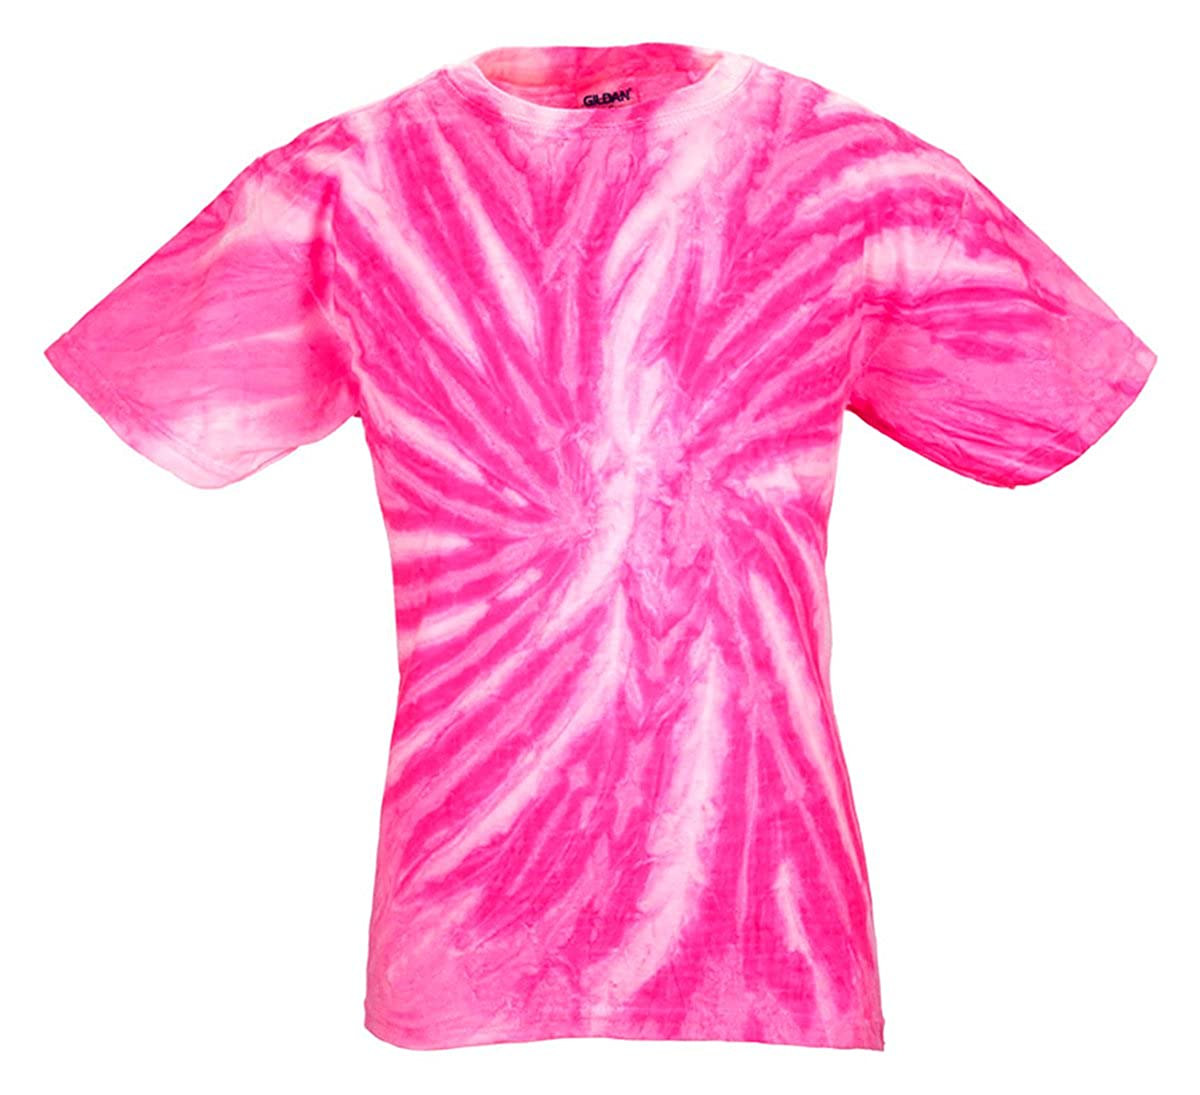 Bubble Gum44; Large Tie Dye H1100B Youth Twist Tie-Dyed Tee